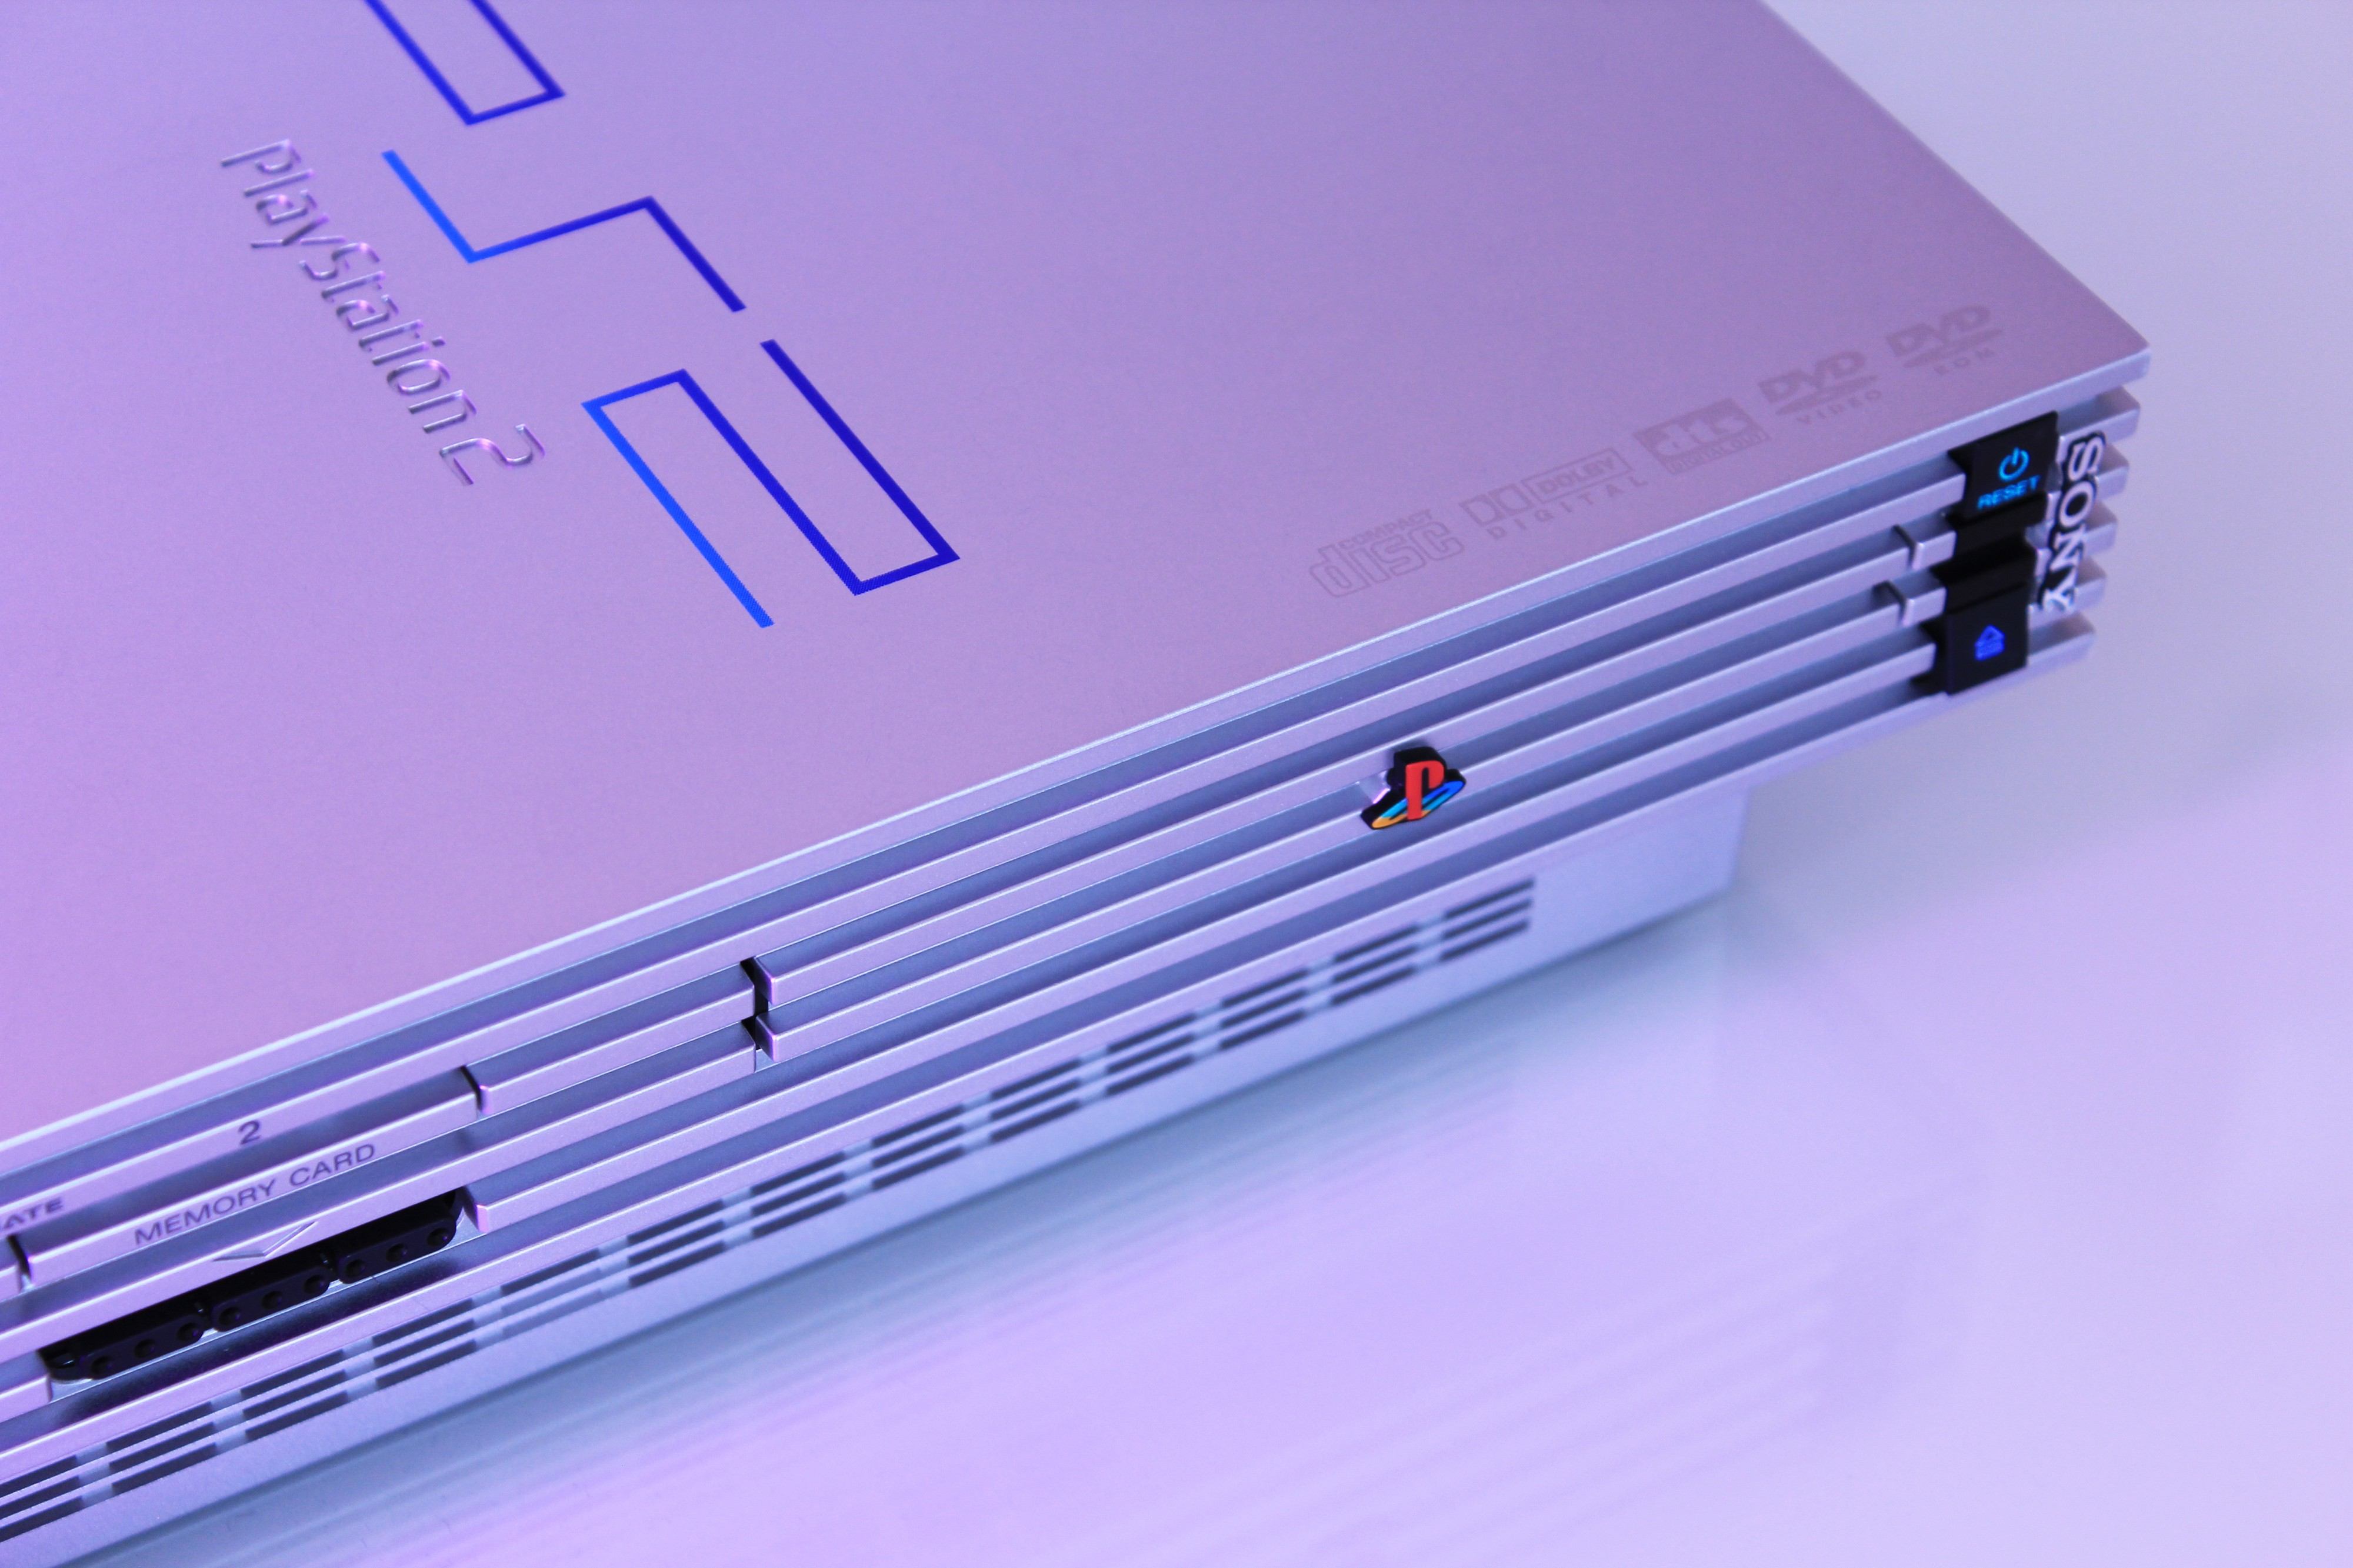 PS2 console.